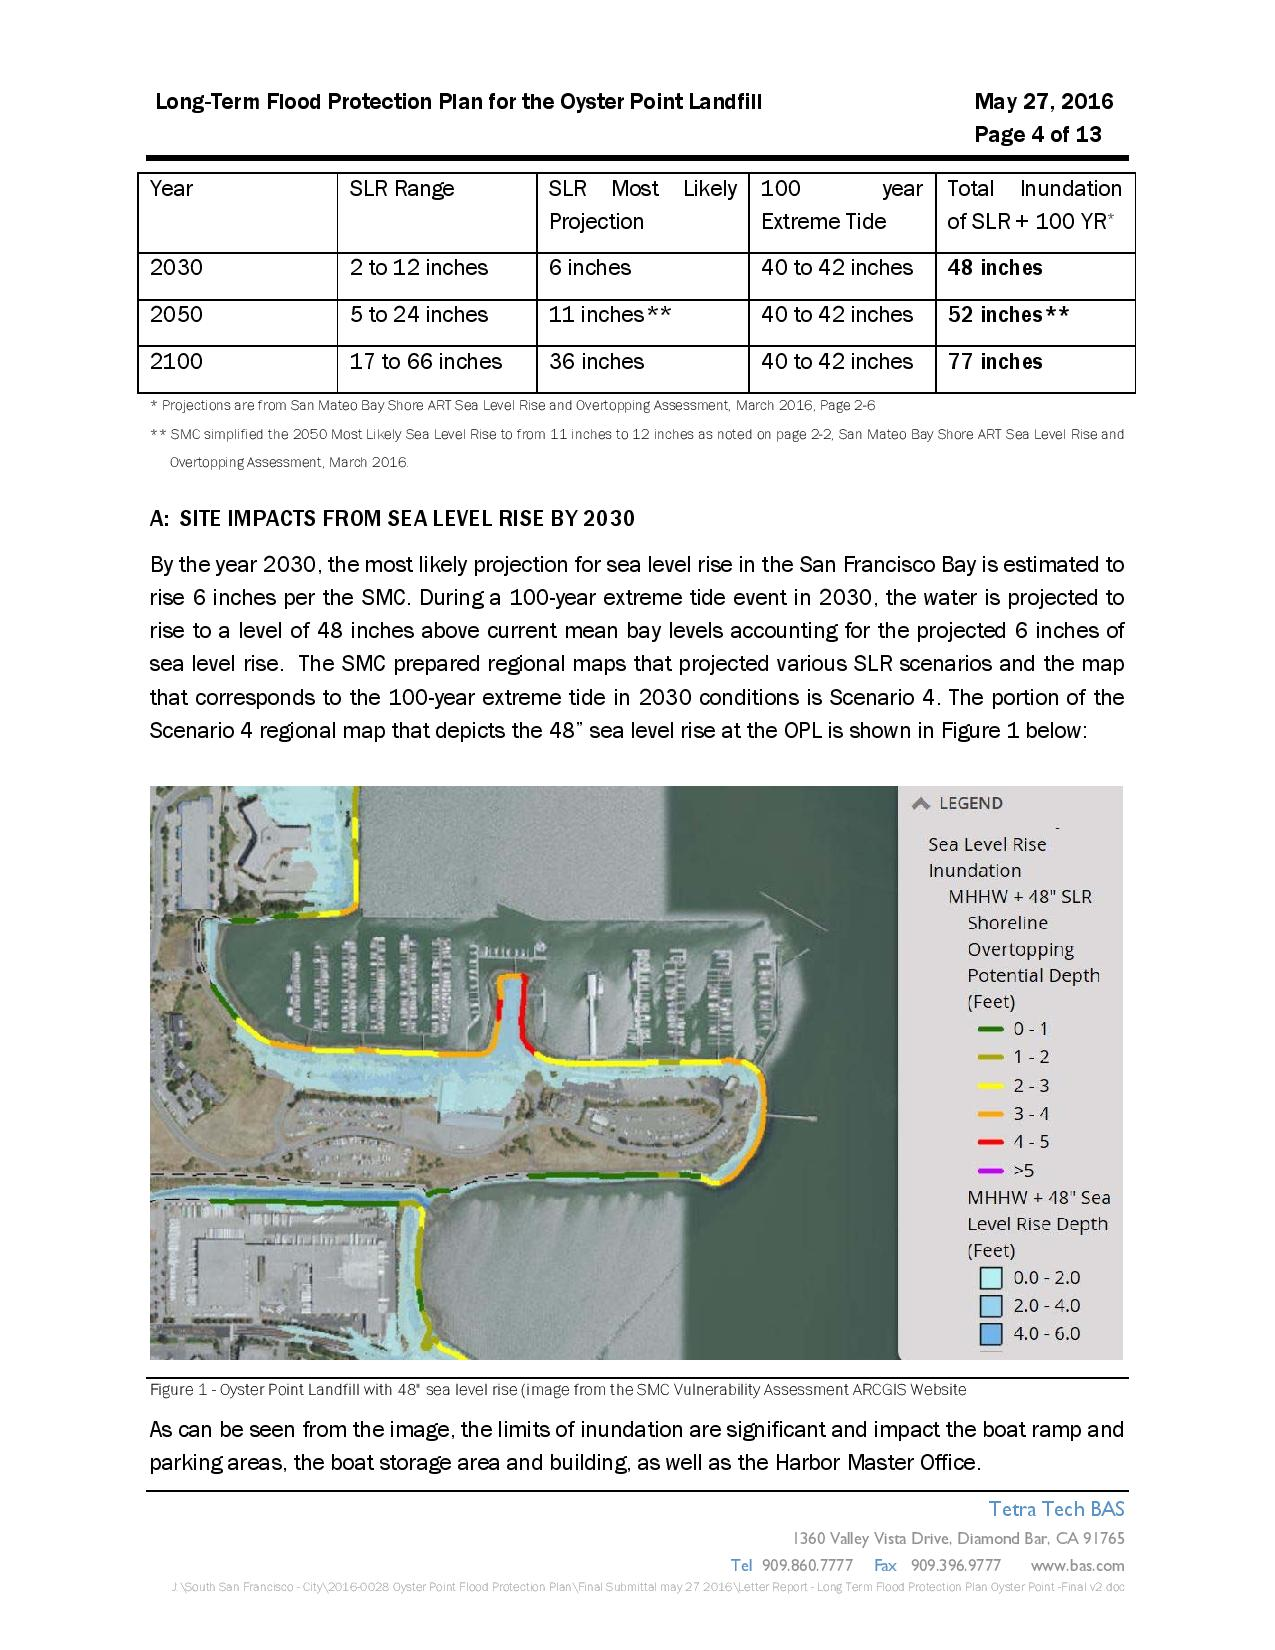 City of SSF Oyster Pt. Landfill Long-Term Flood Protection Letter & Plan-2-page-006